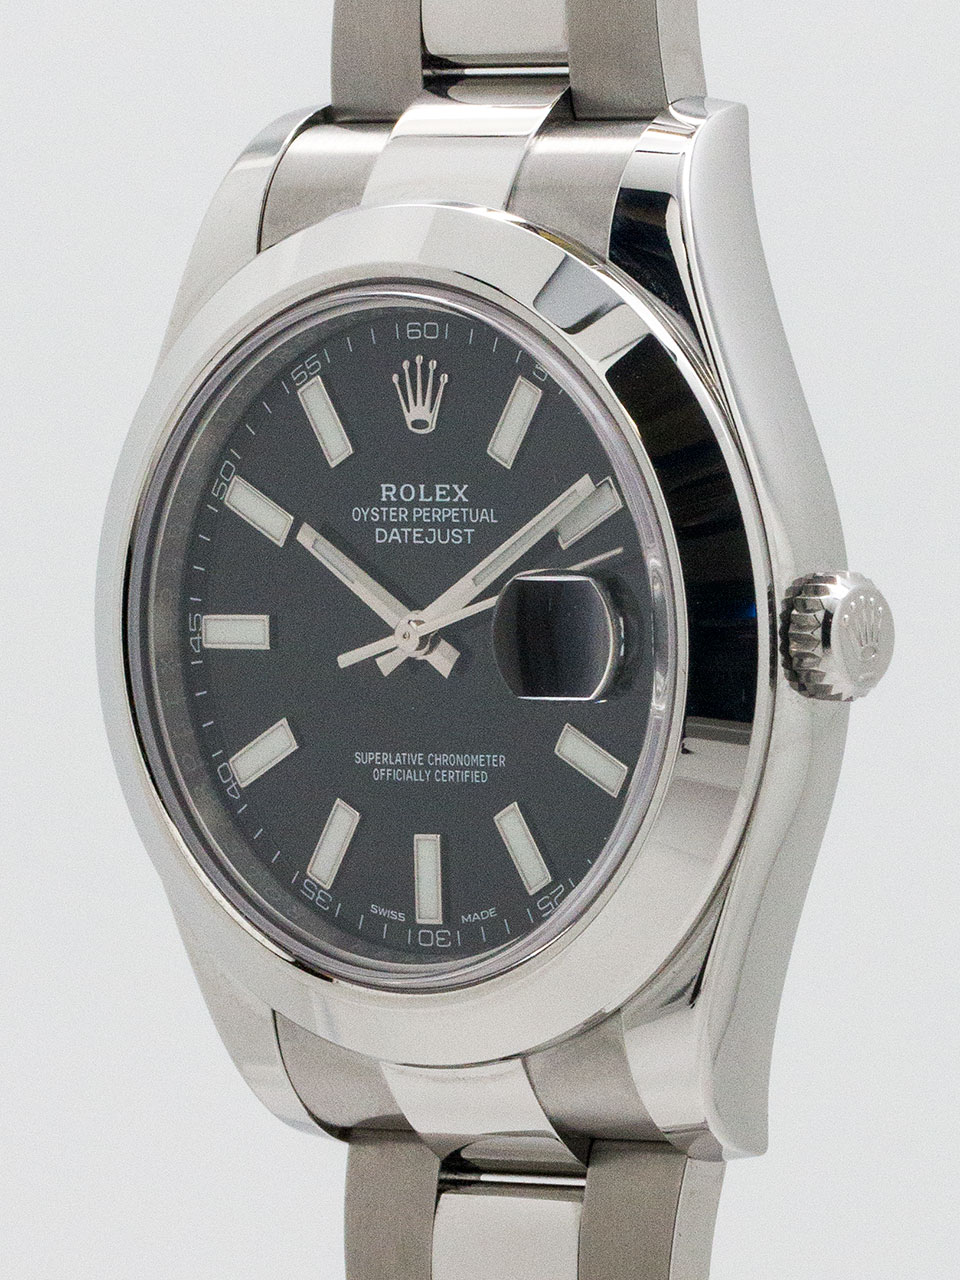 Rolex Datejust II ref# 116300 circa 2015 with Card